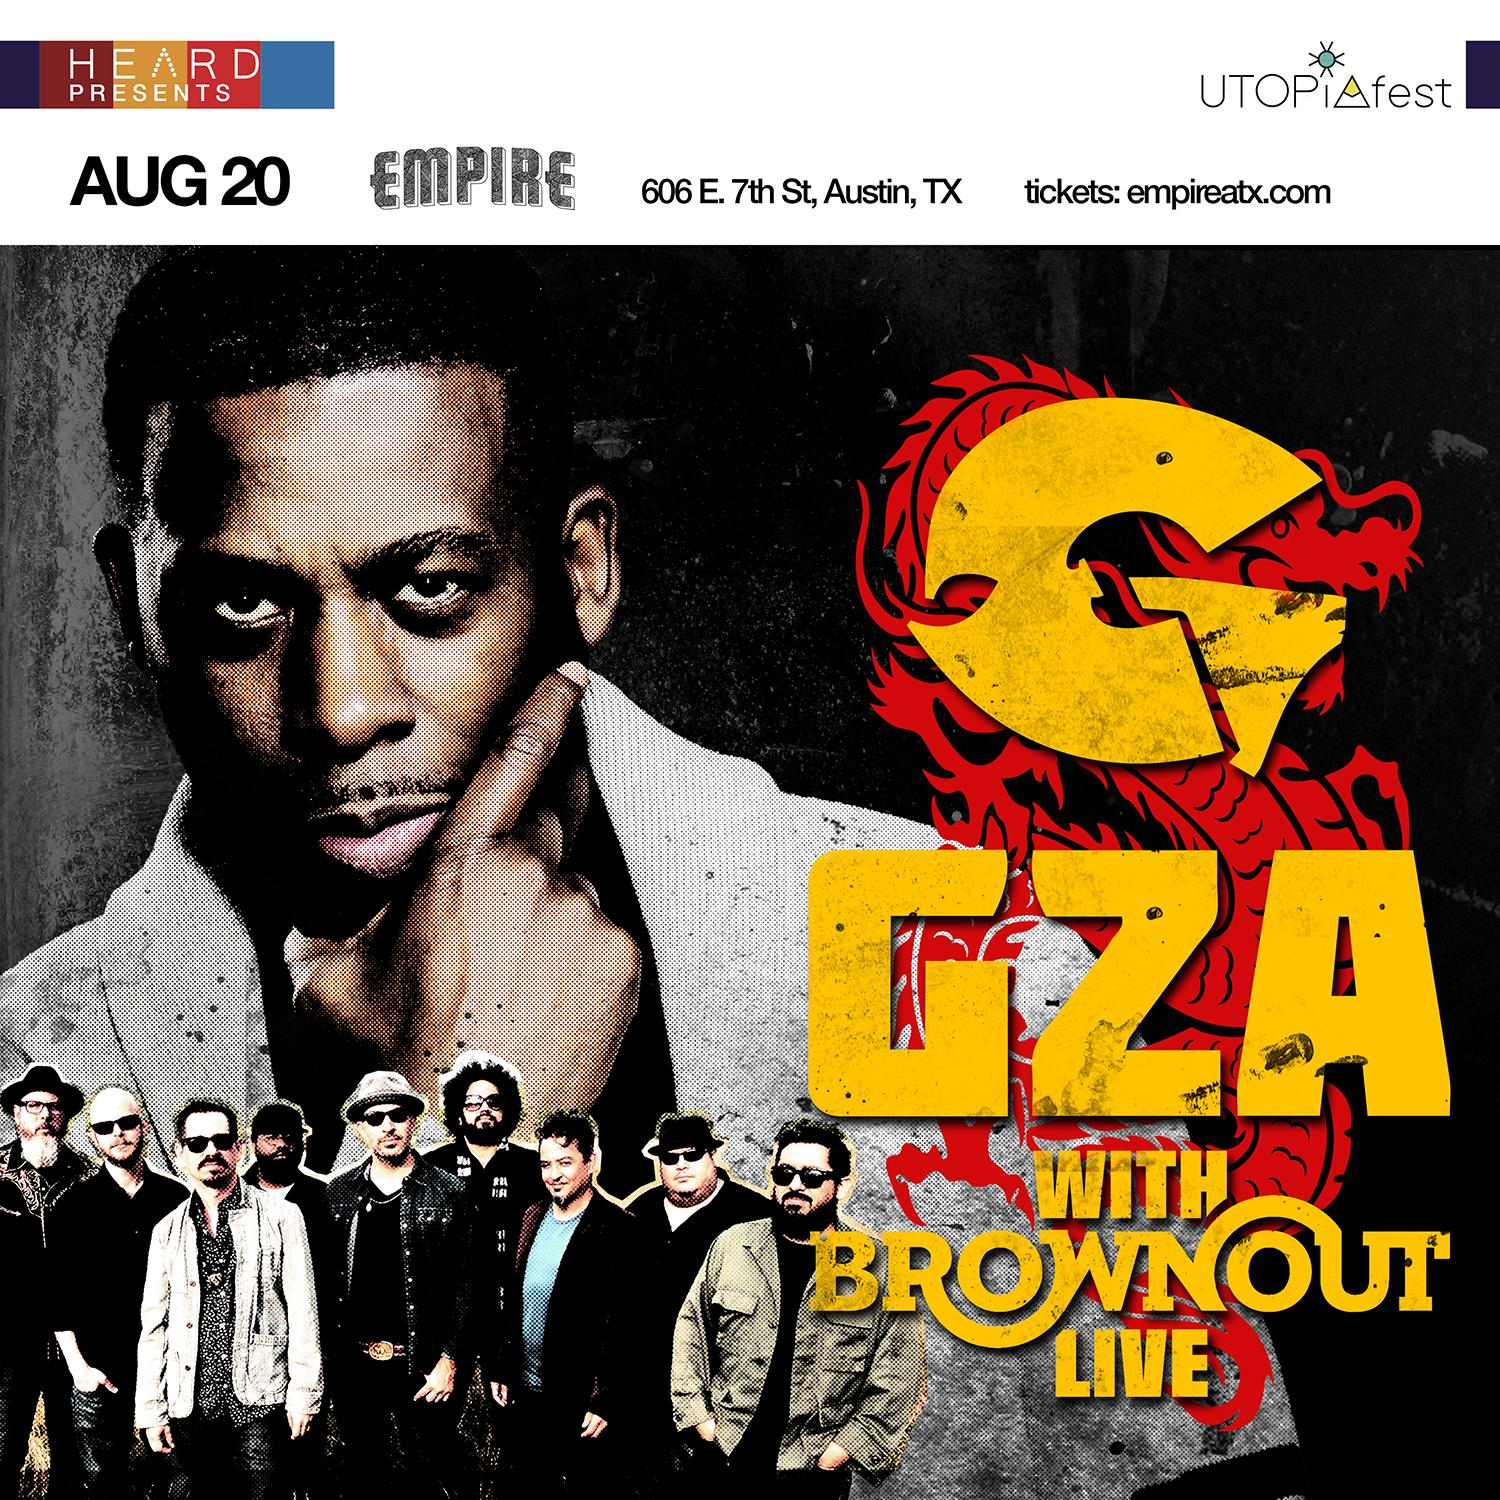 GZA x Brownout LIVE with Blastfamous USA